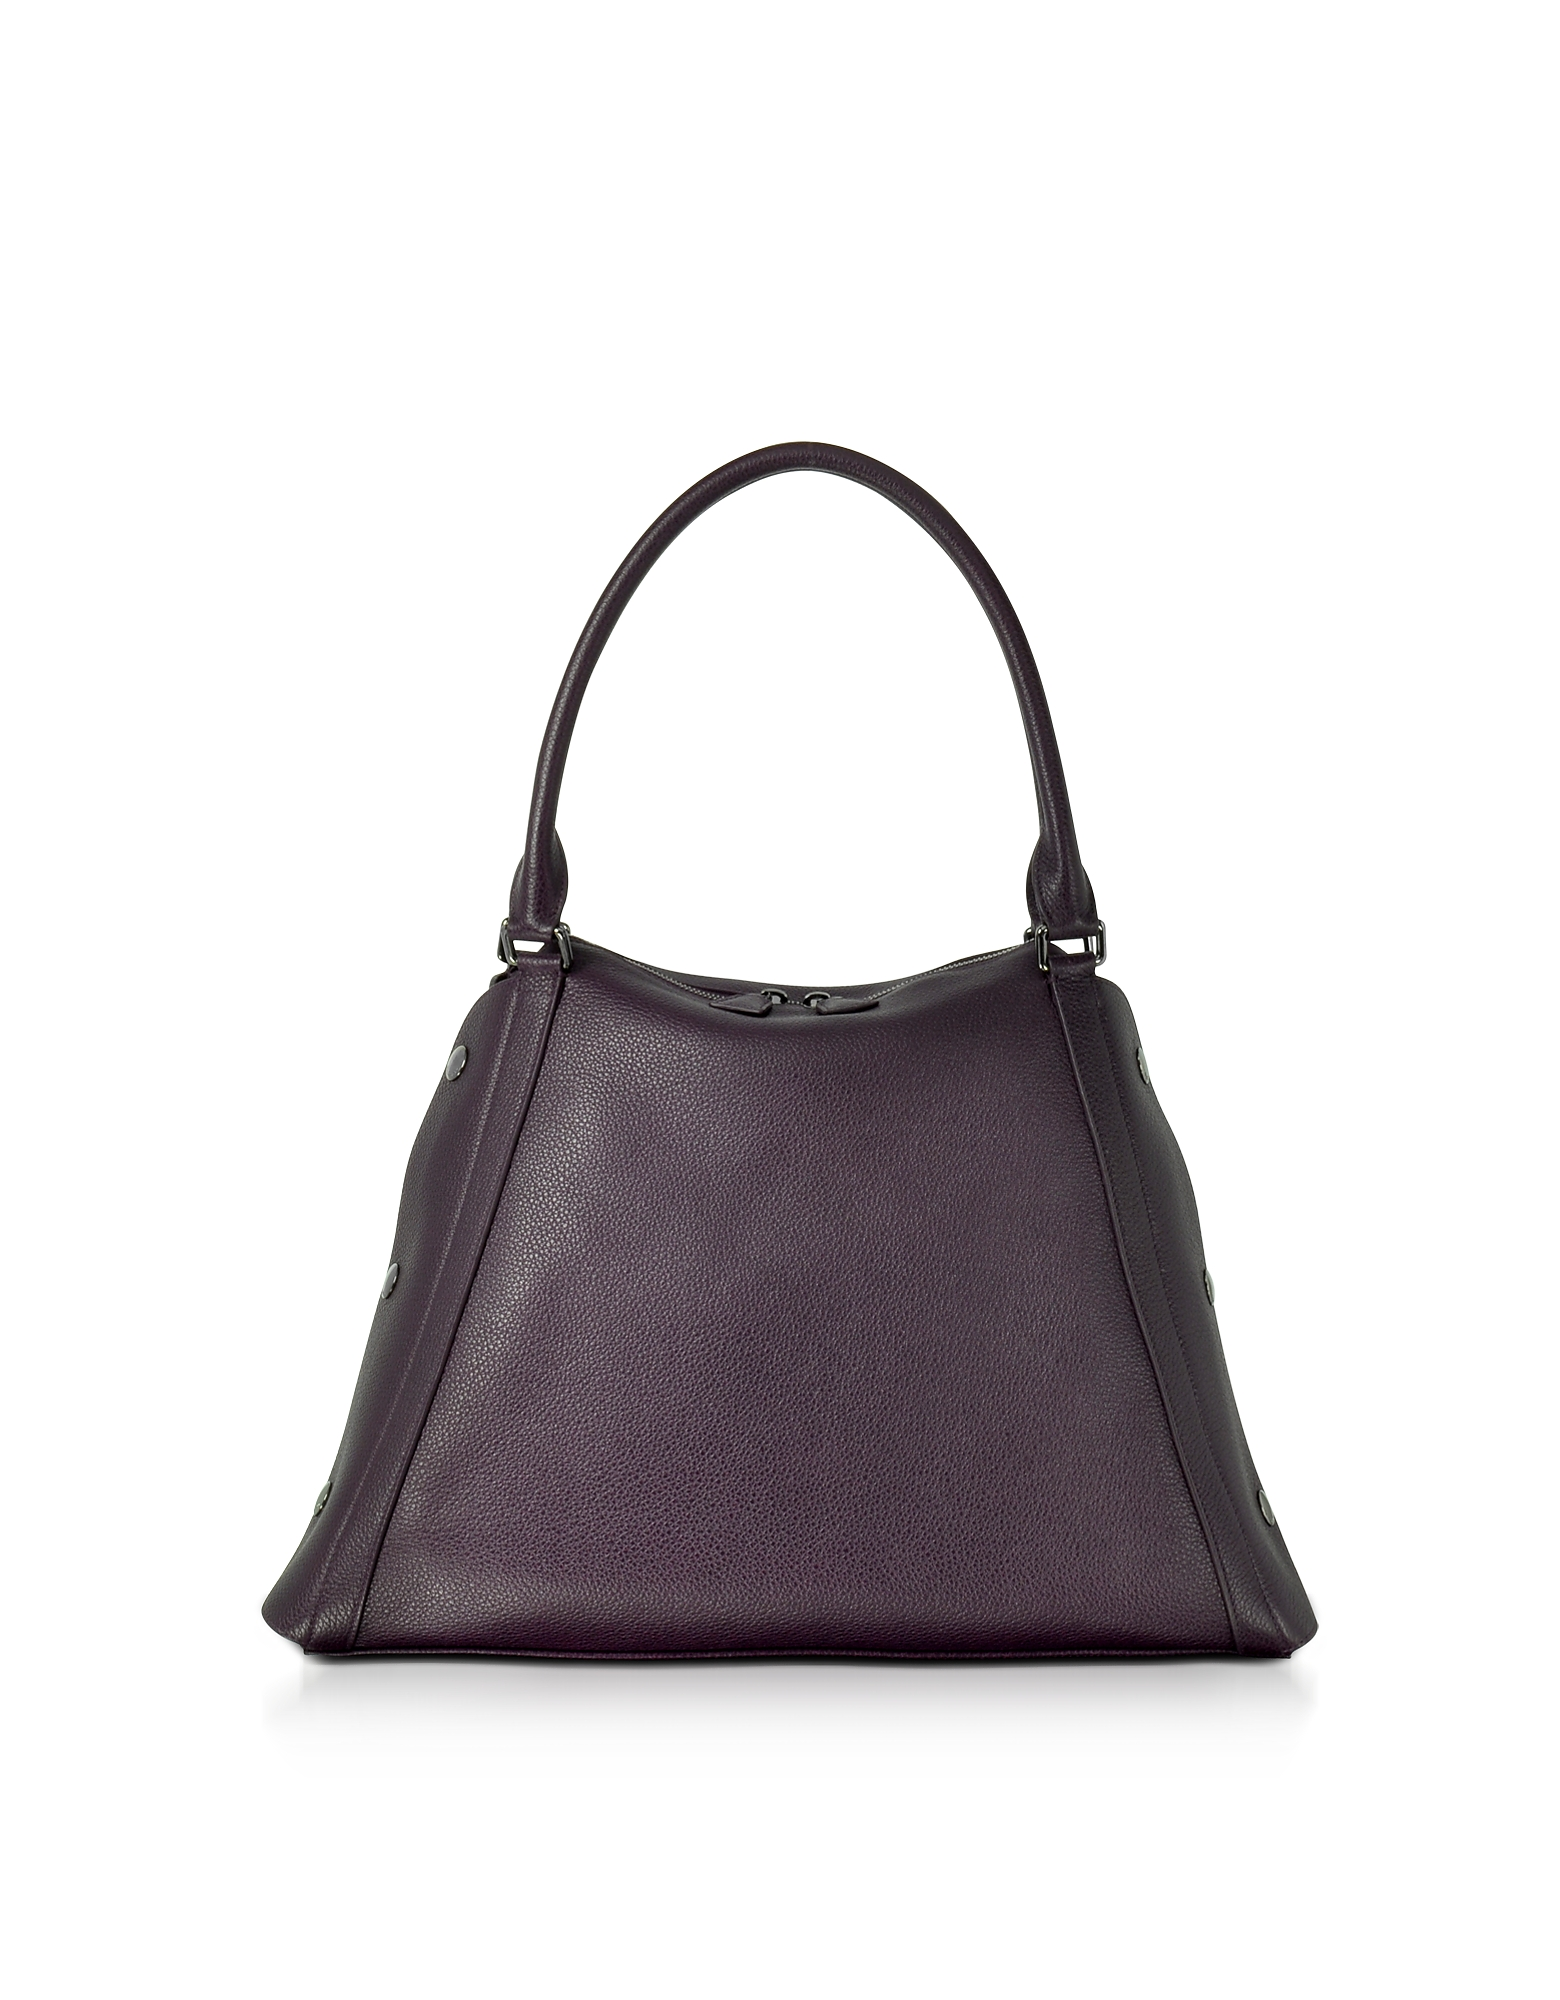 M Aimee Blackberry Leather Satchel Bag